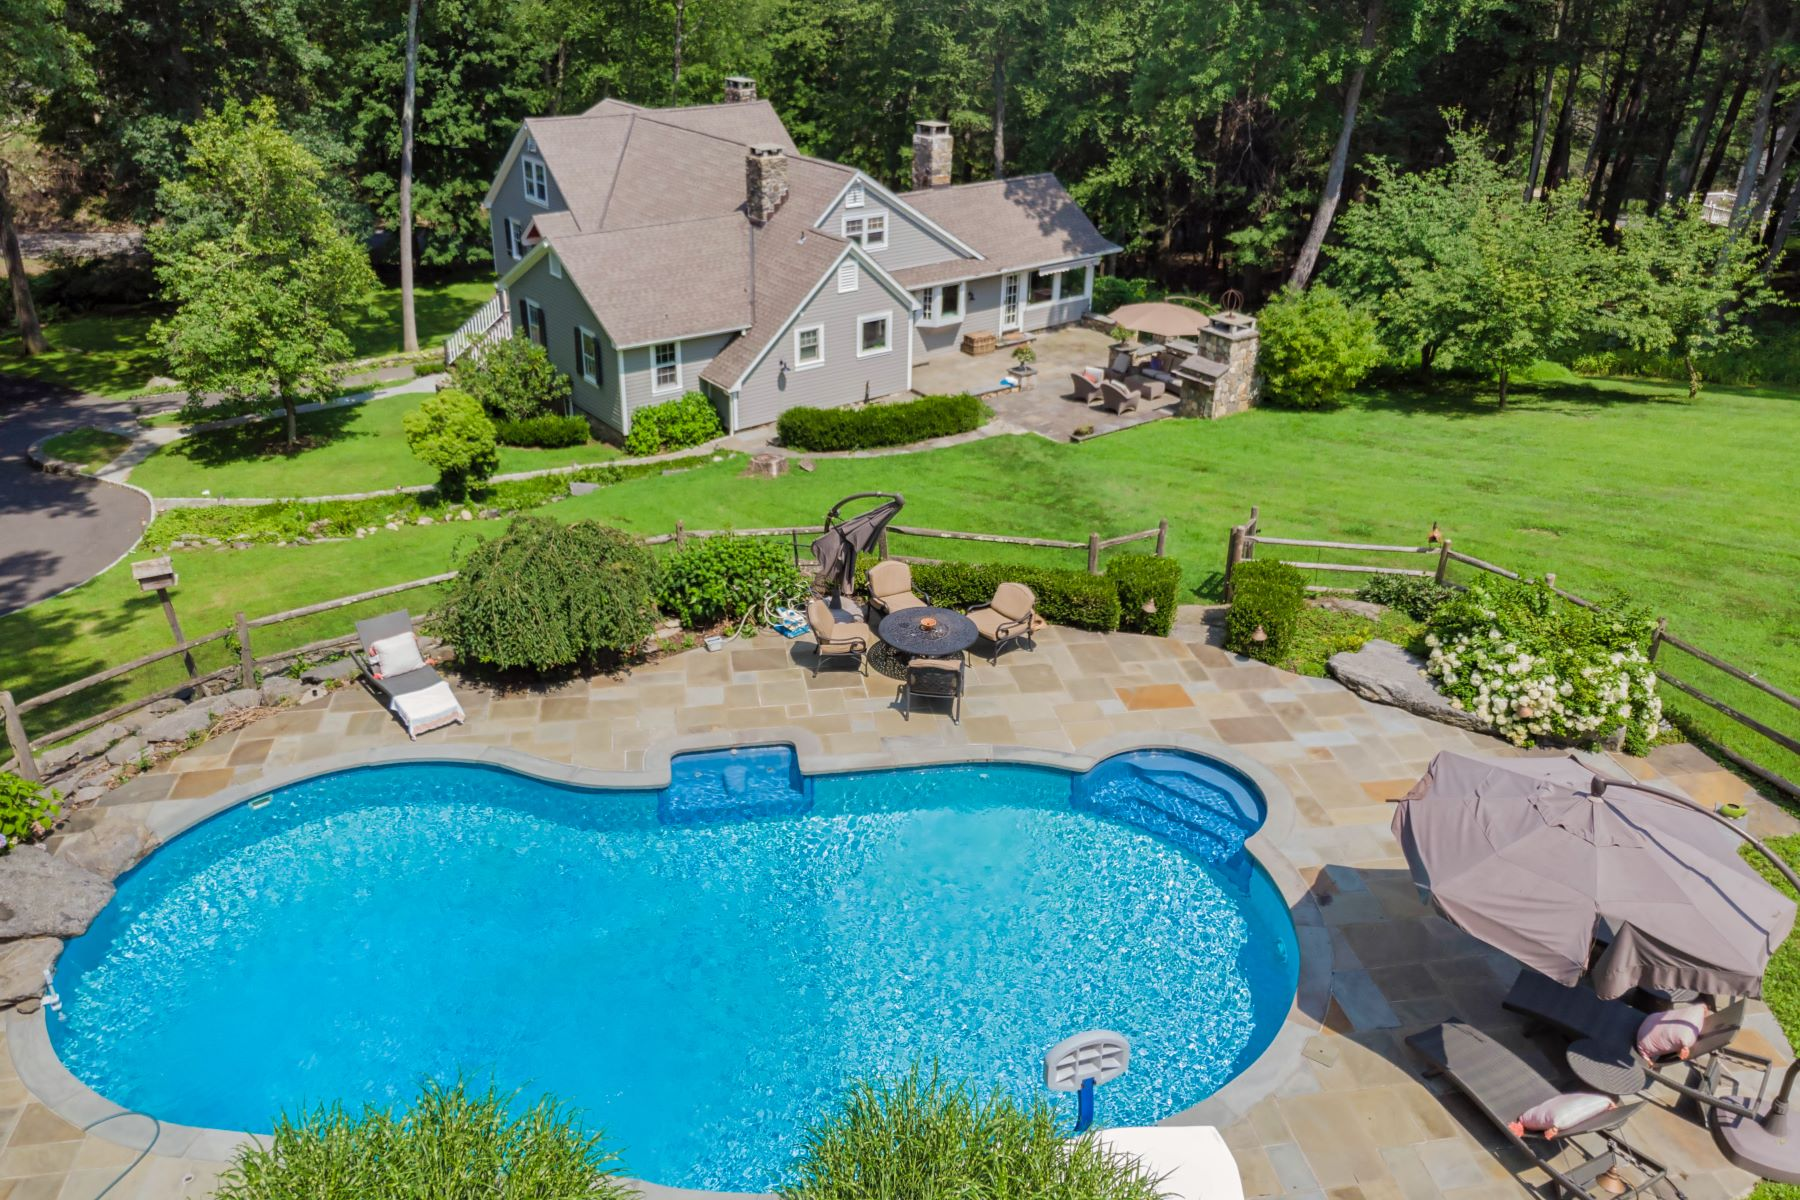 Single Family Home for Sale at Heated In-Ground Pool 7 New Bridge Road Brookfield, Connecticut 06804 United States